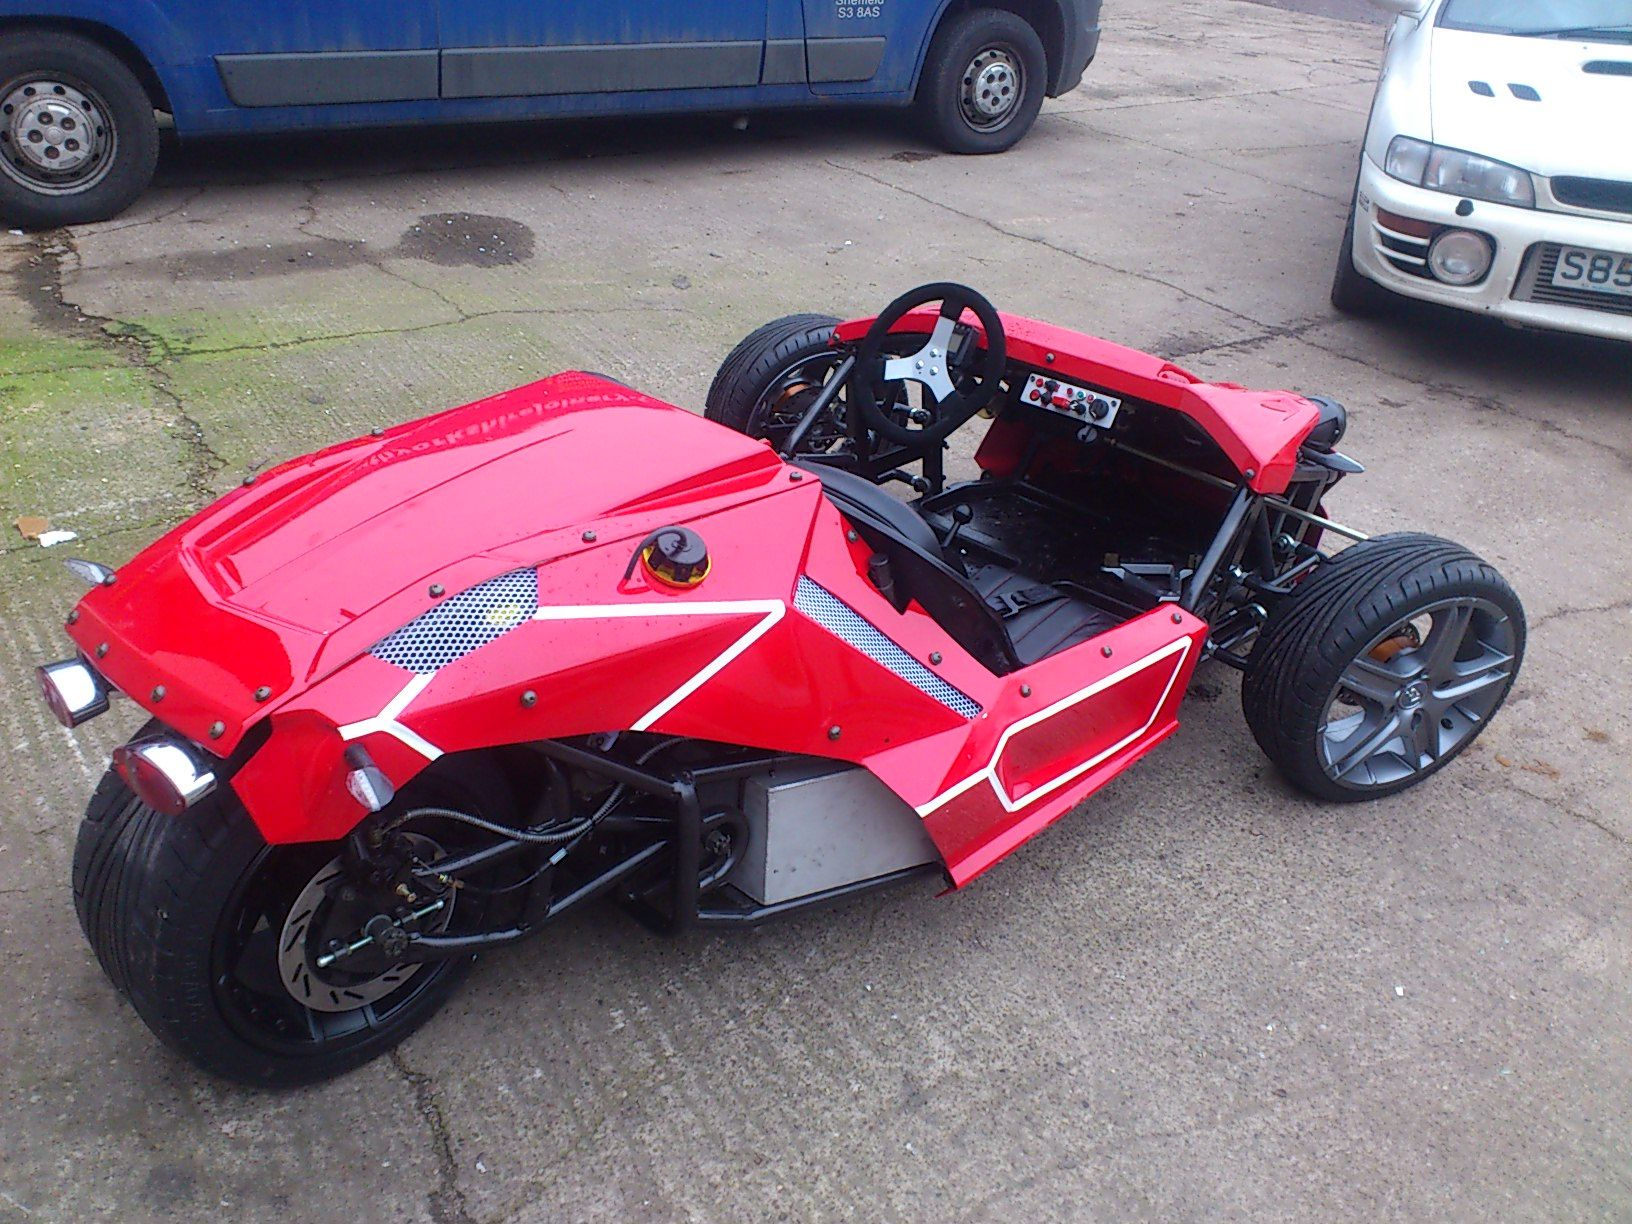 Awesome Street Legal 3 Wheeler Sports Car 6 000 Scorpionsportscars